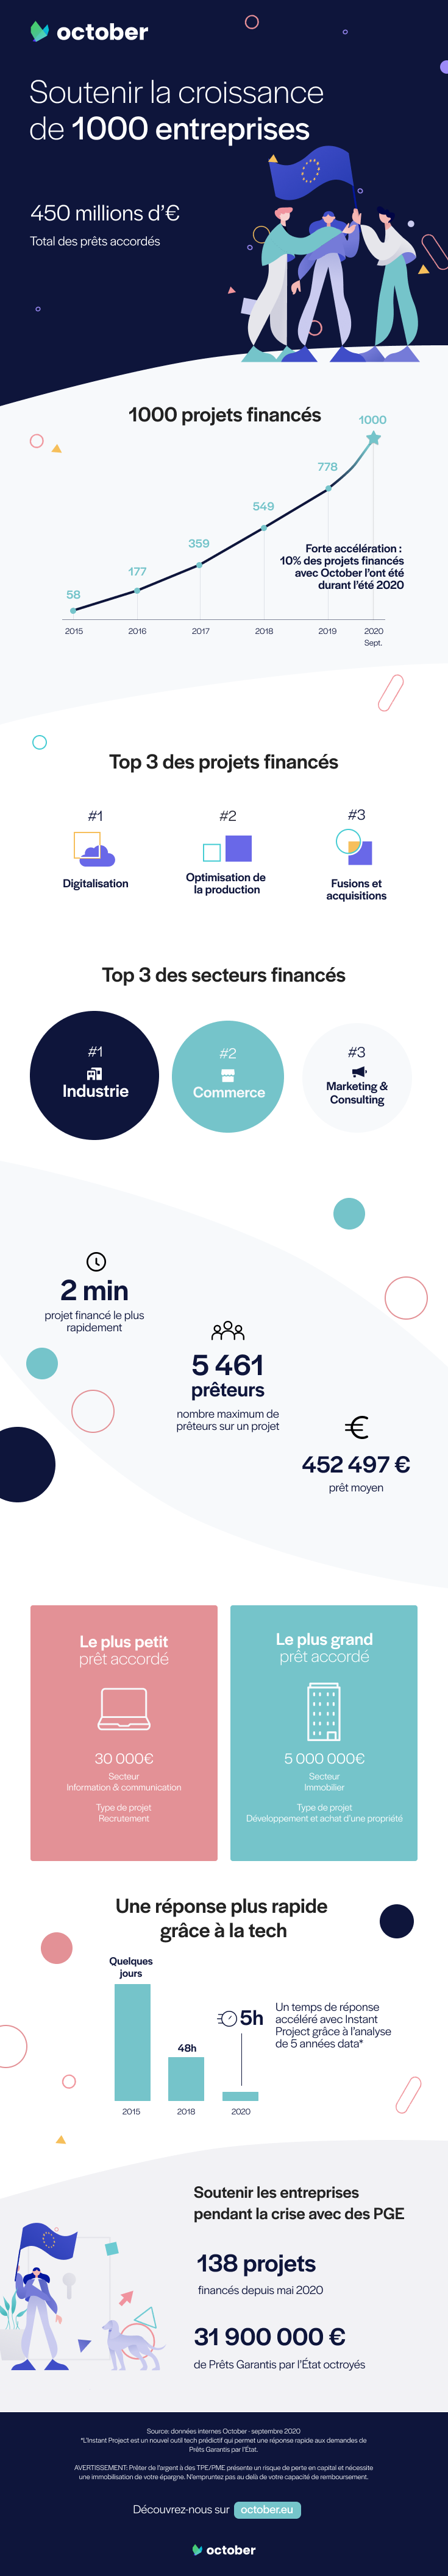 Infographie 1000 projets